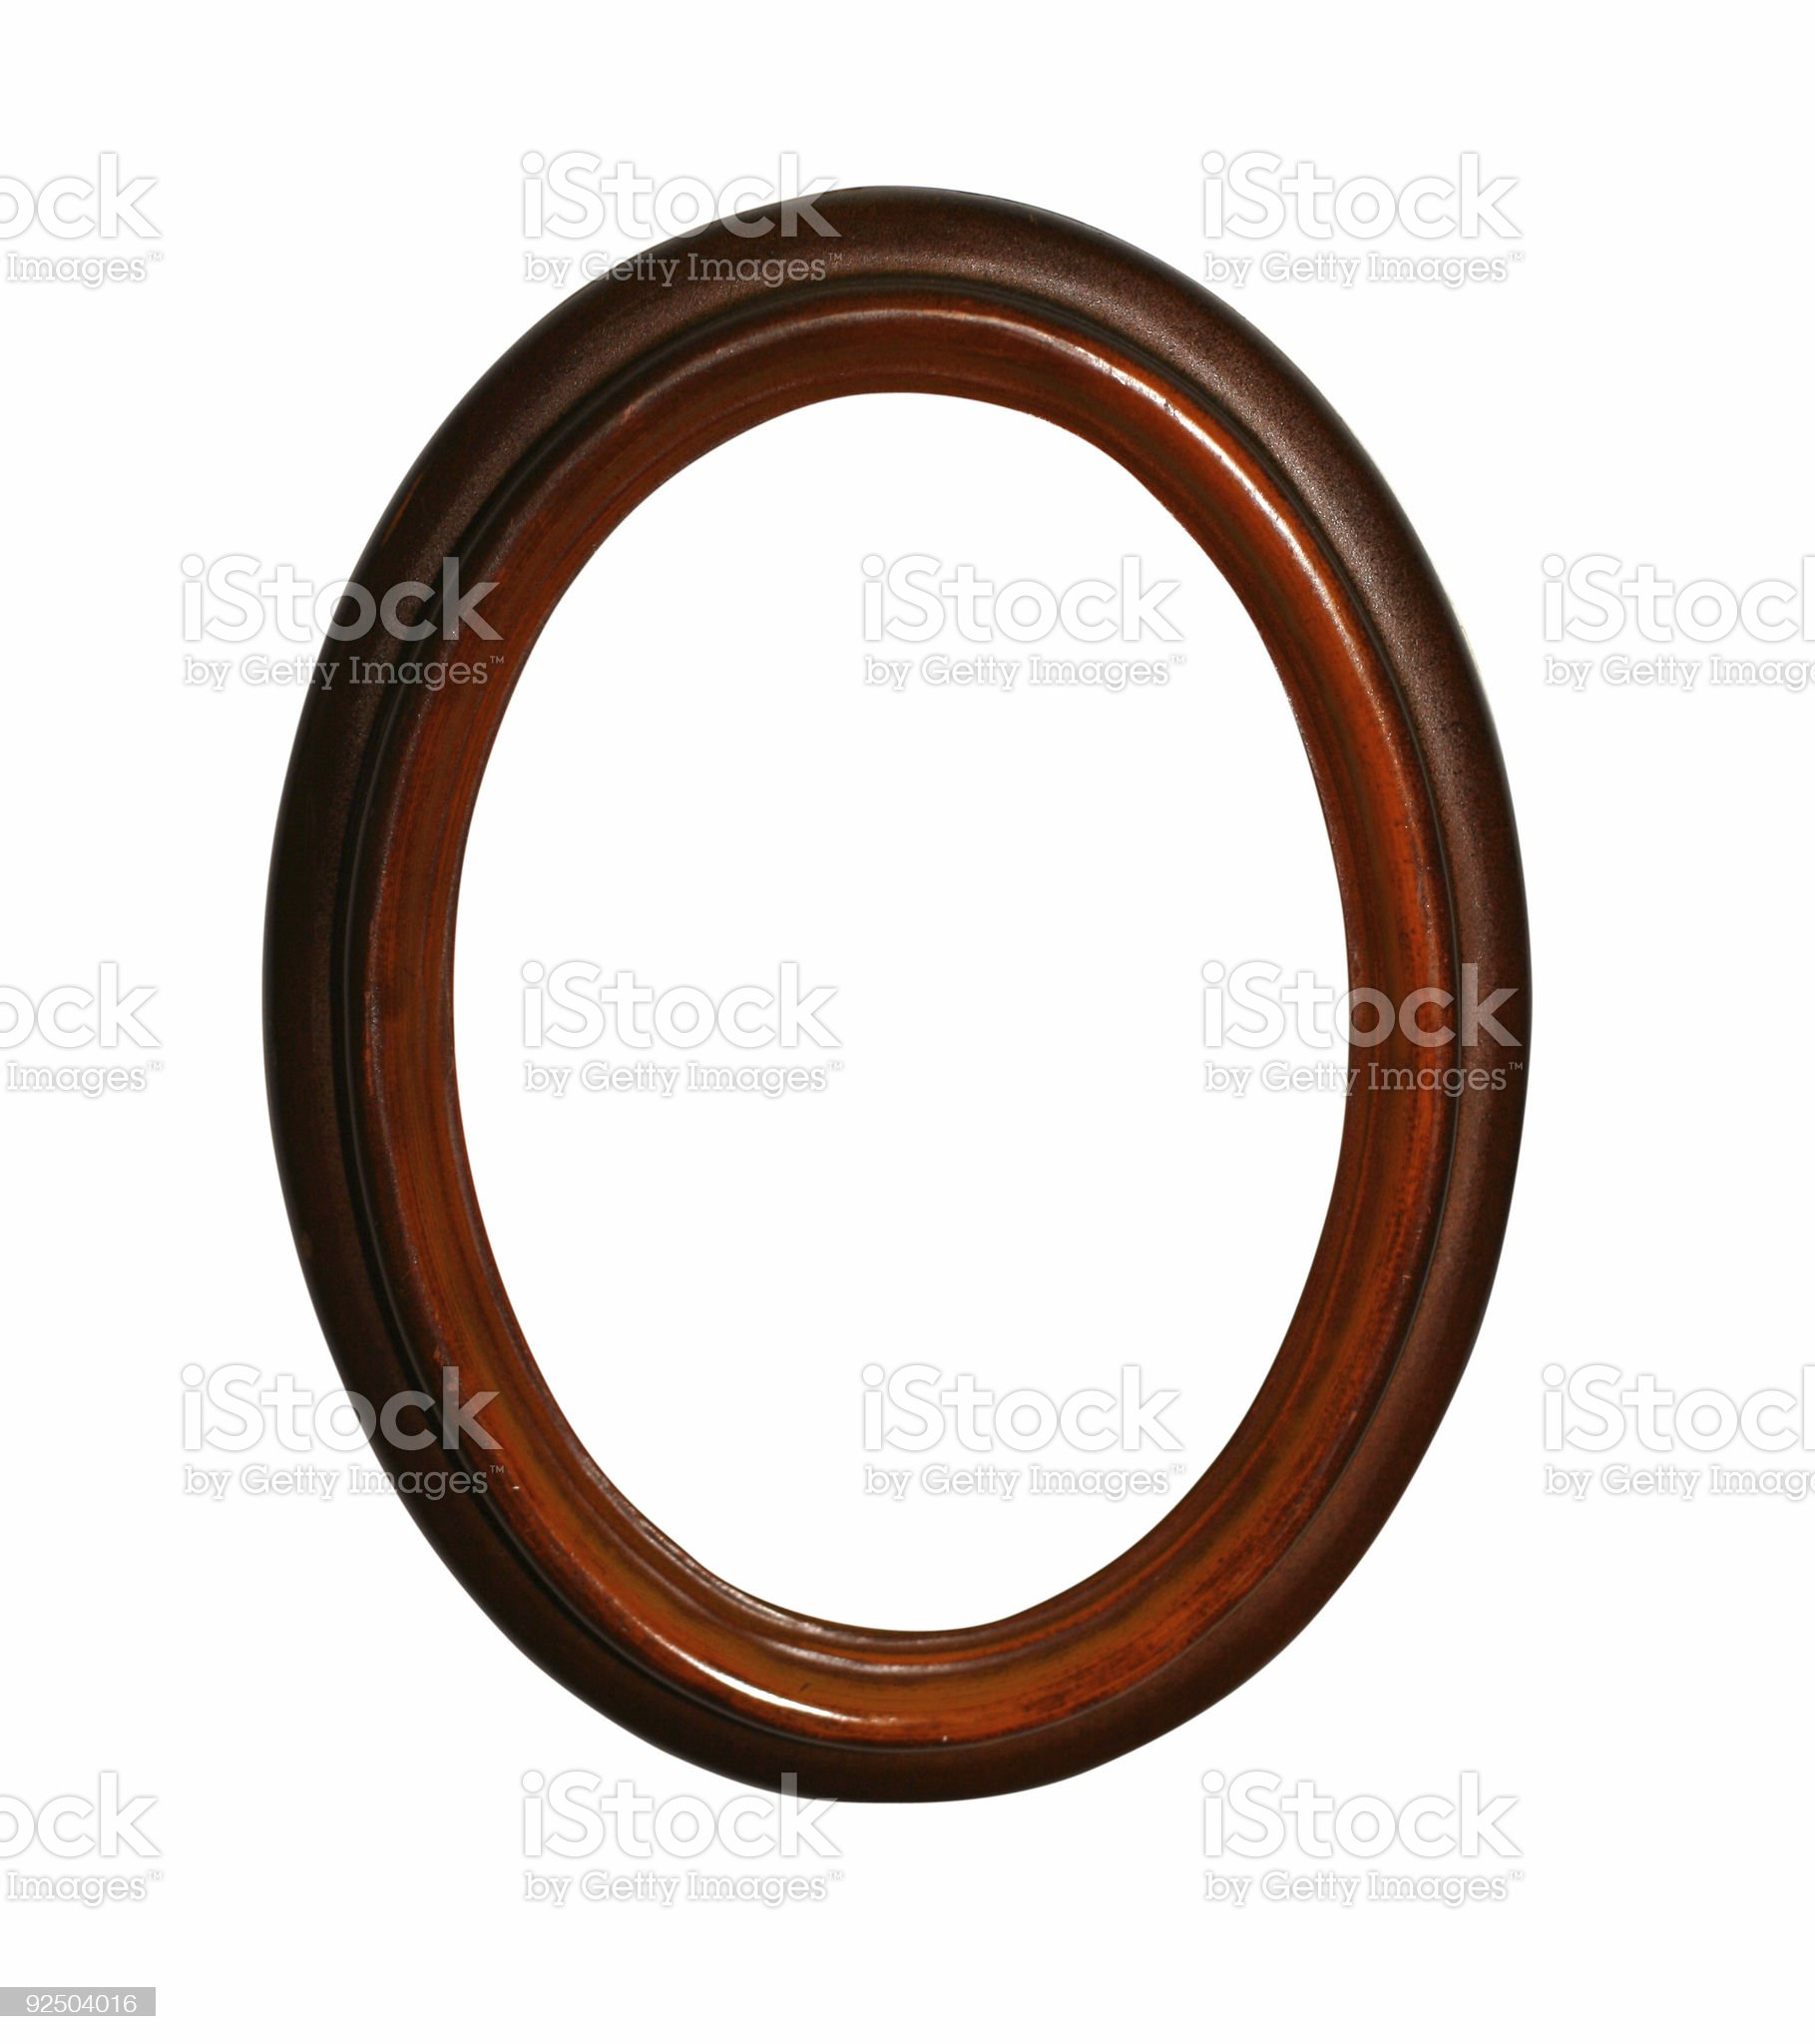 wooden oval frame with path royalty-free stock photo